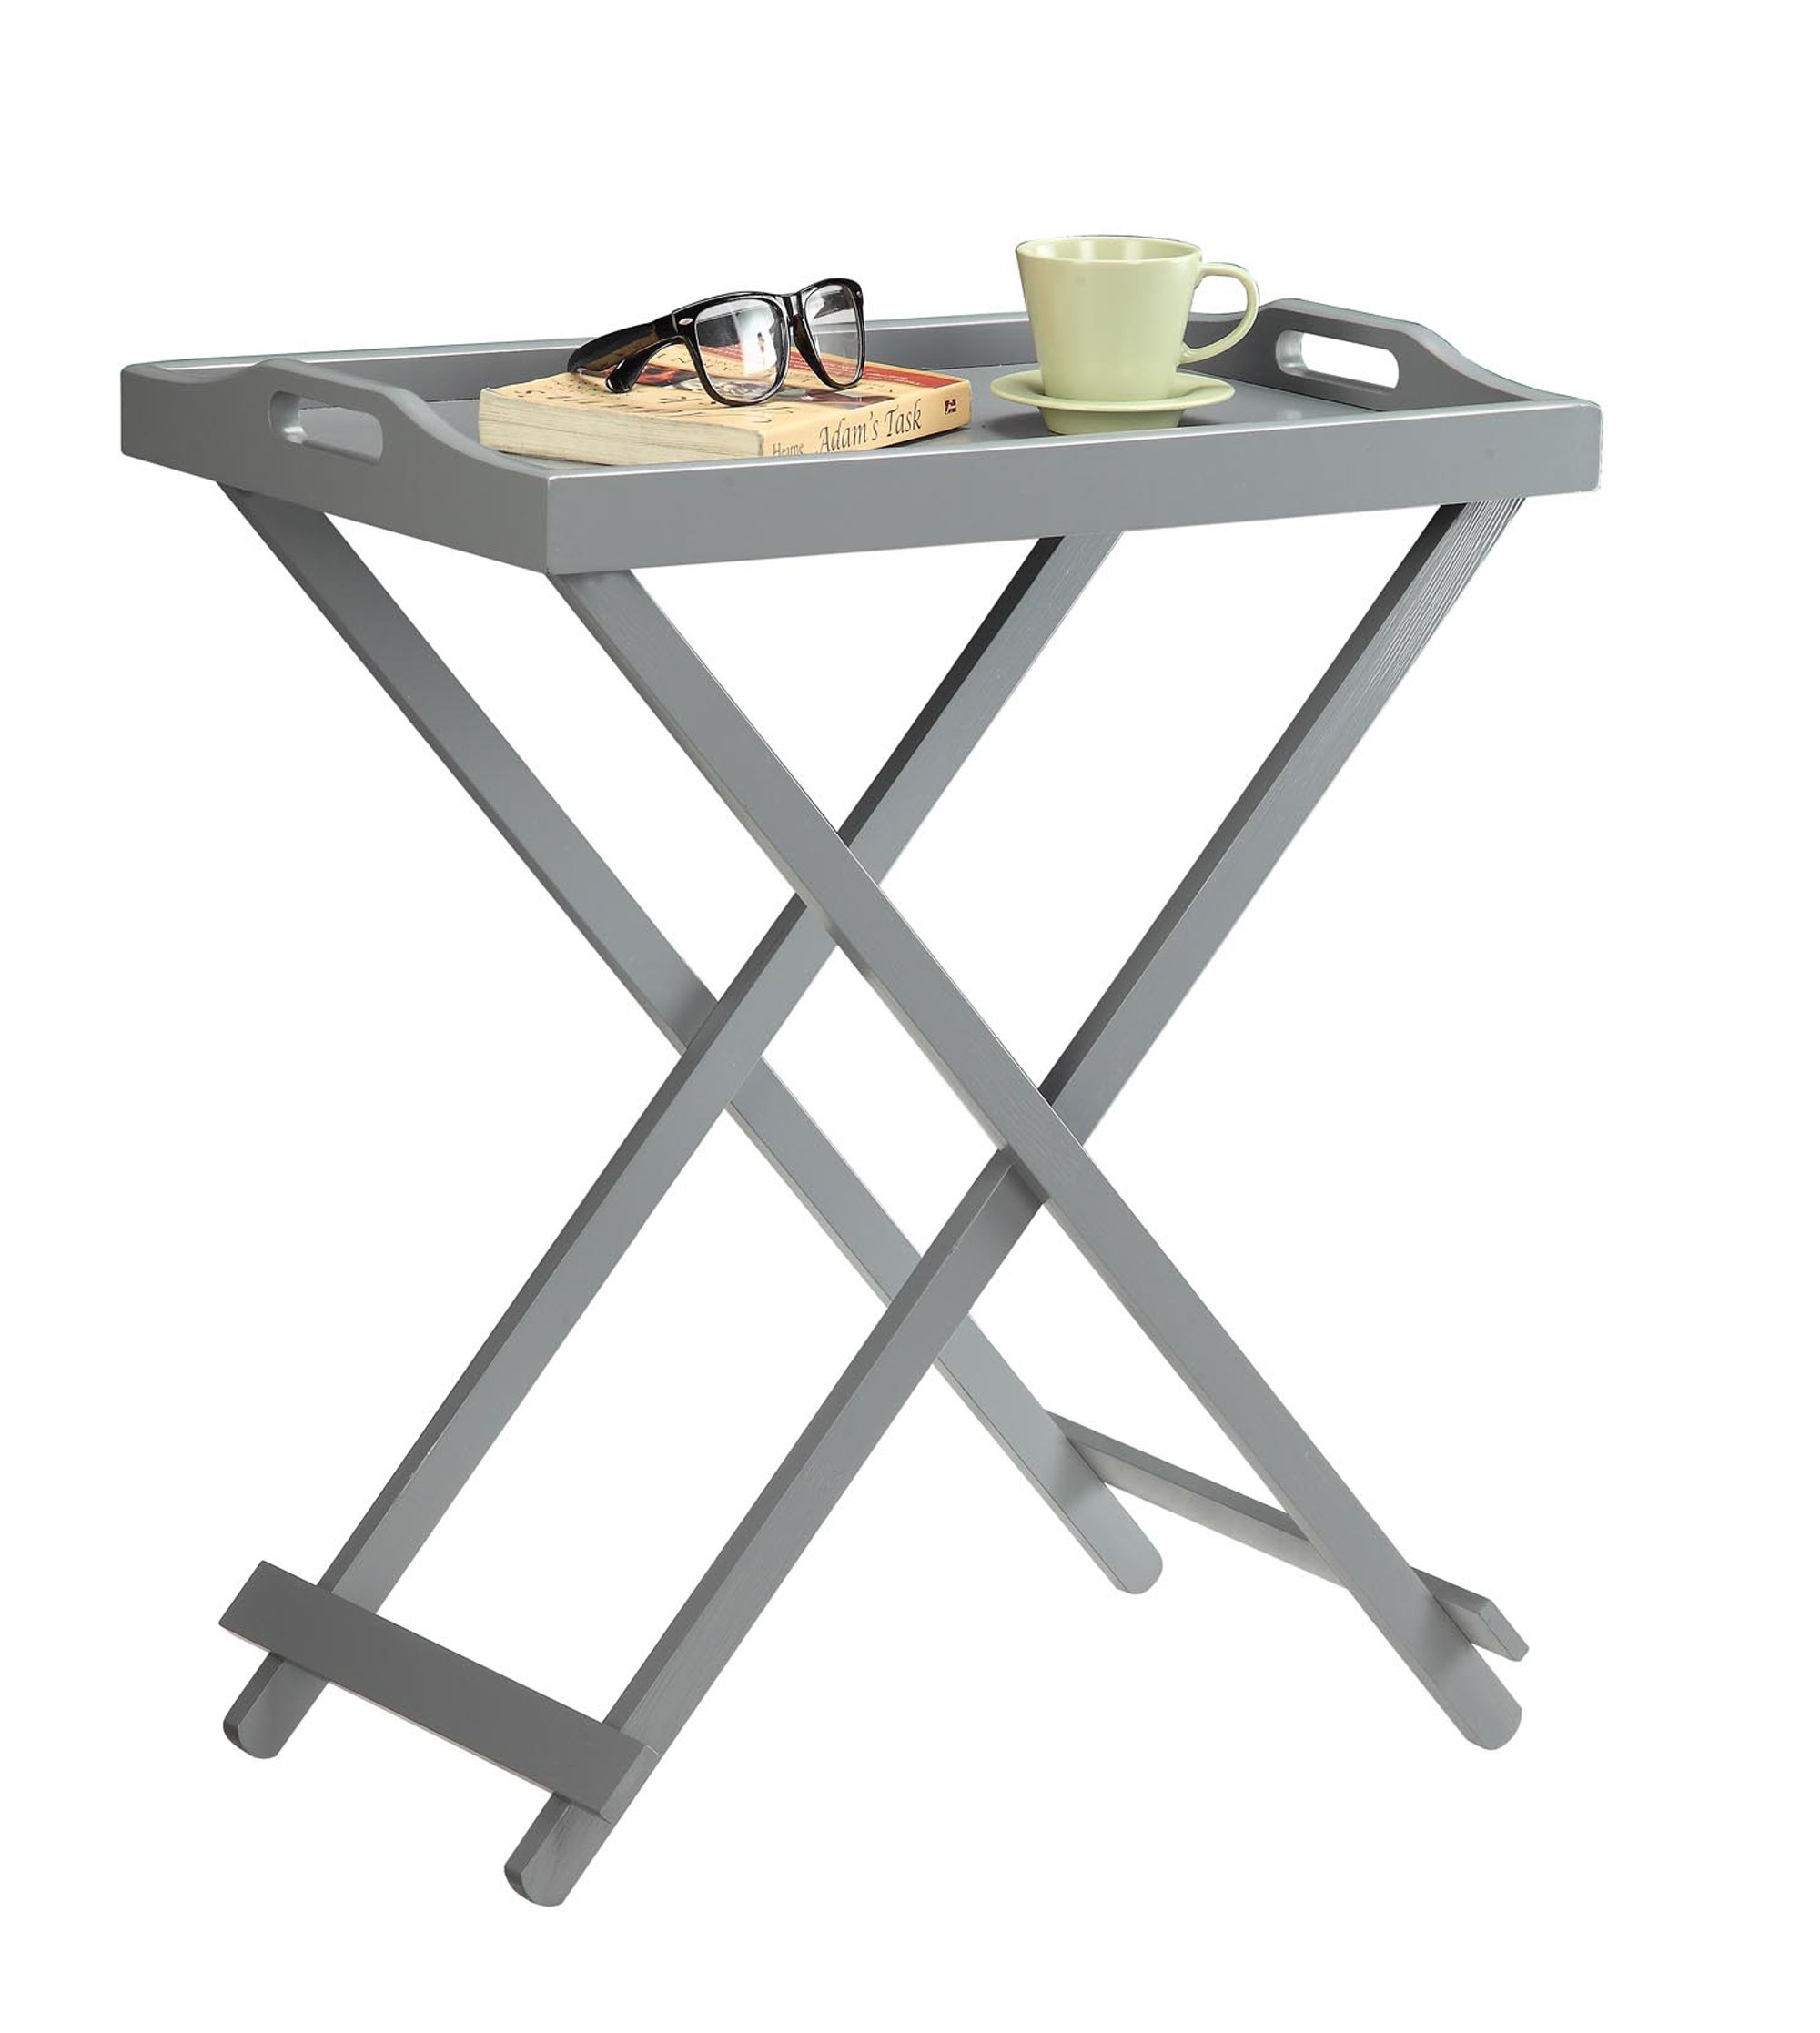 Convenience Concepts Designs2Go Folding Tray Table, Gray by Convenience Concepts (Image #2)